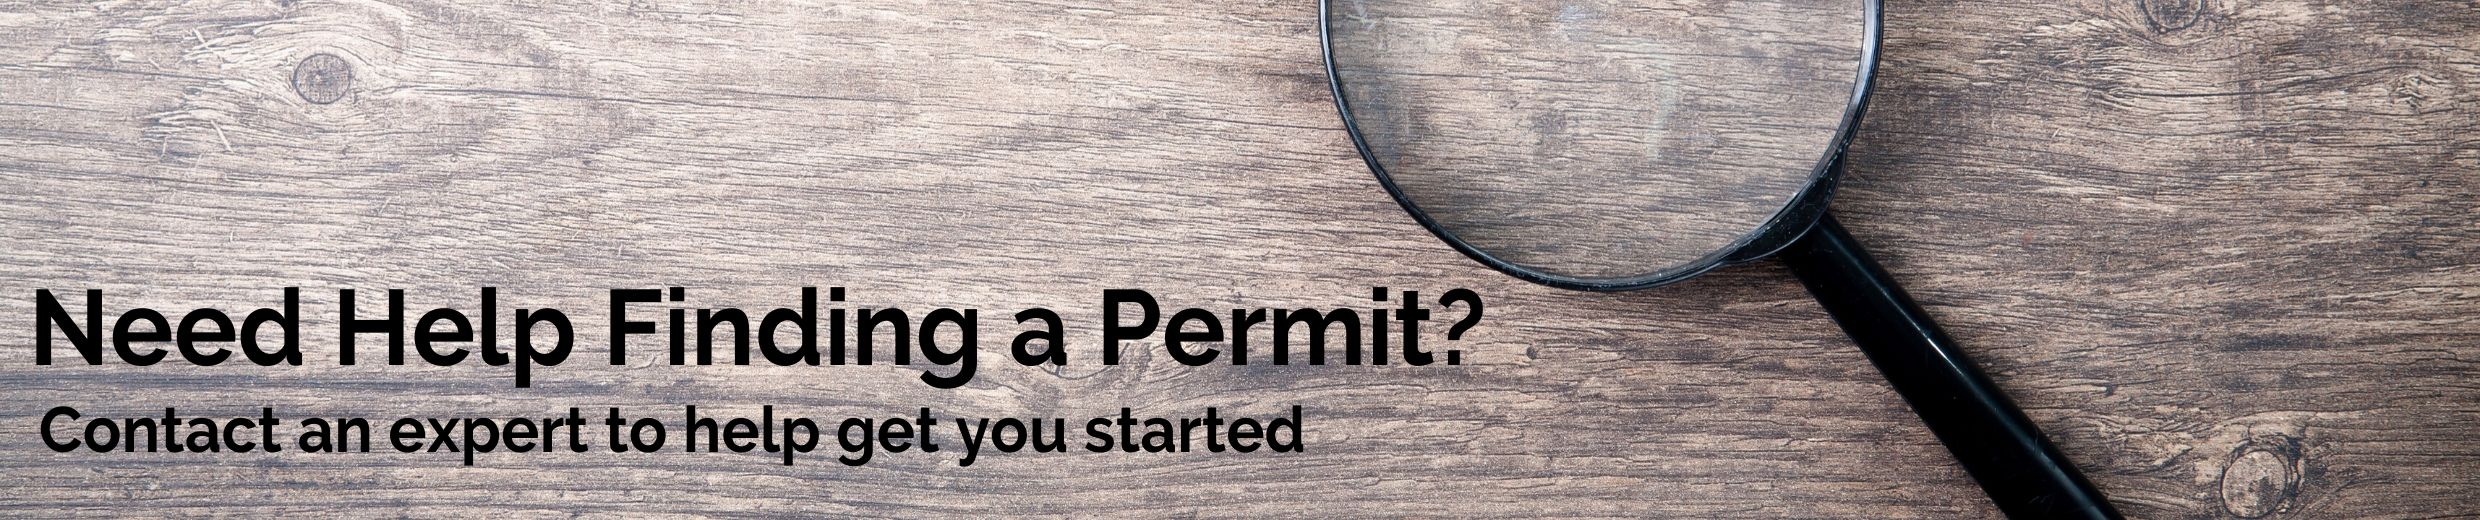 Need Help Finding a Permit Button